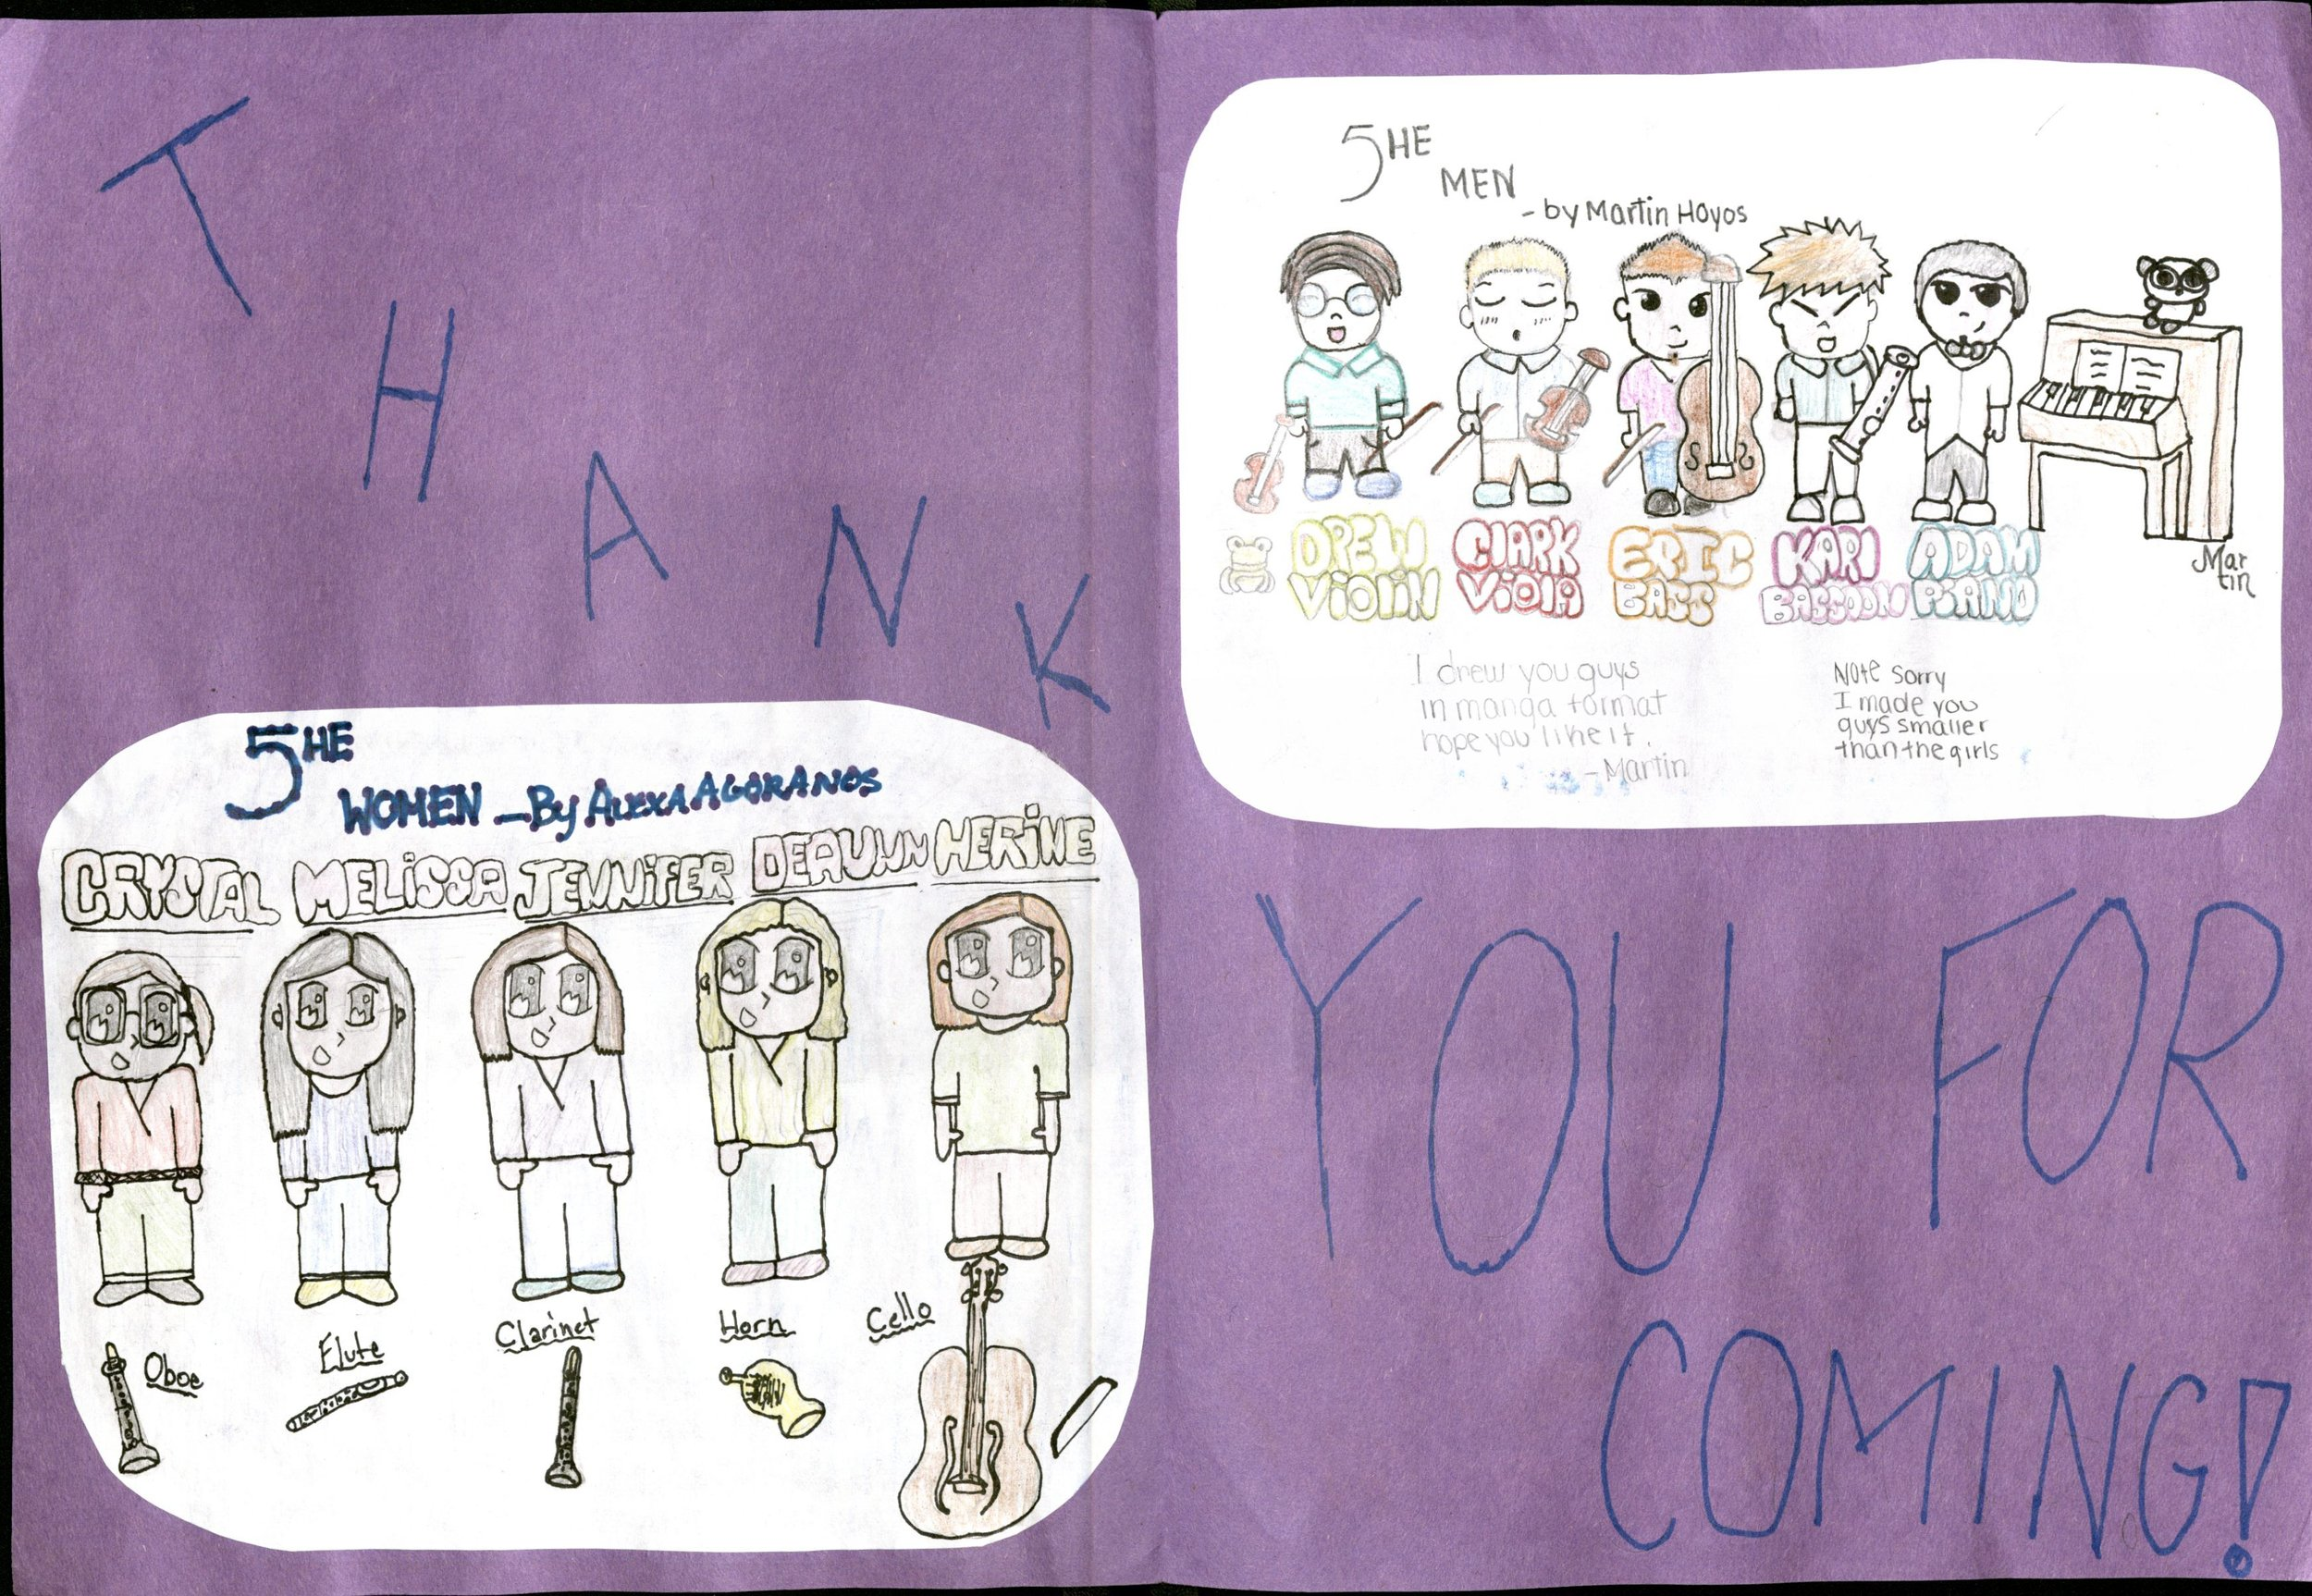 These students at Cambridge Lakes went all out in their Thank You note!!